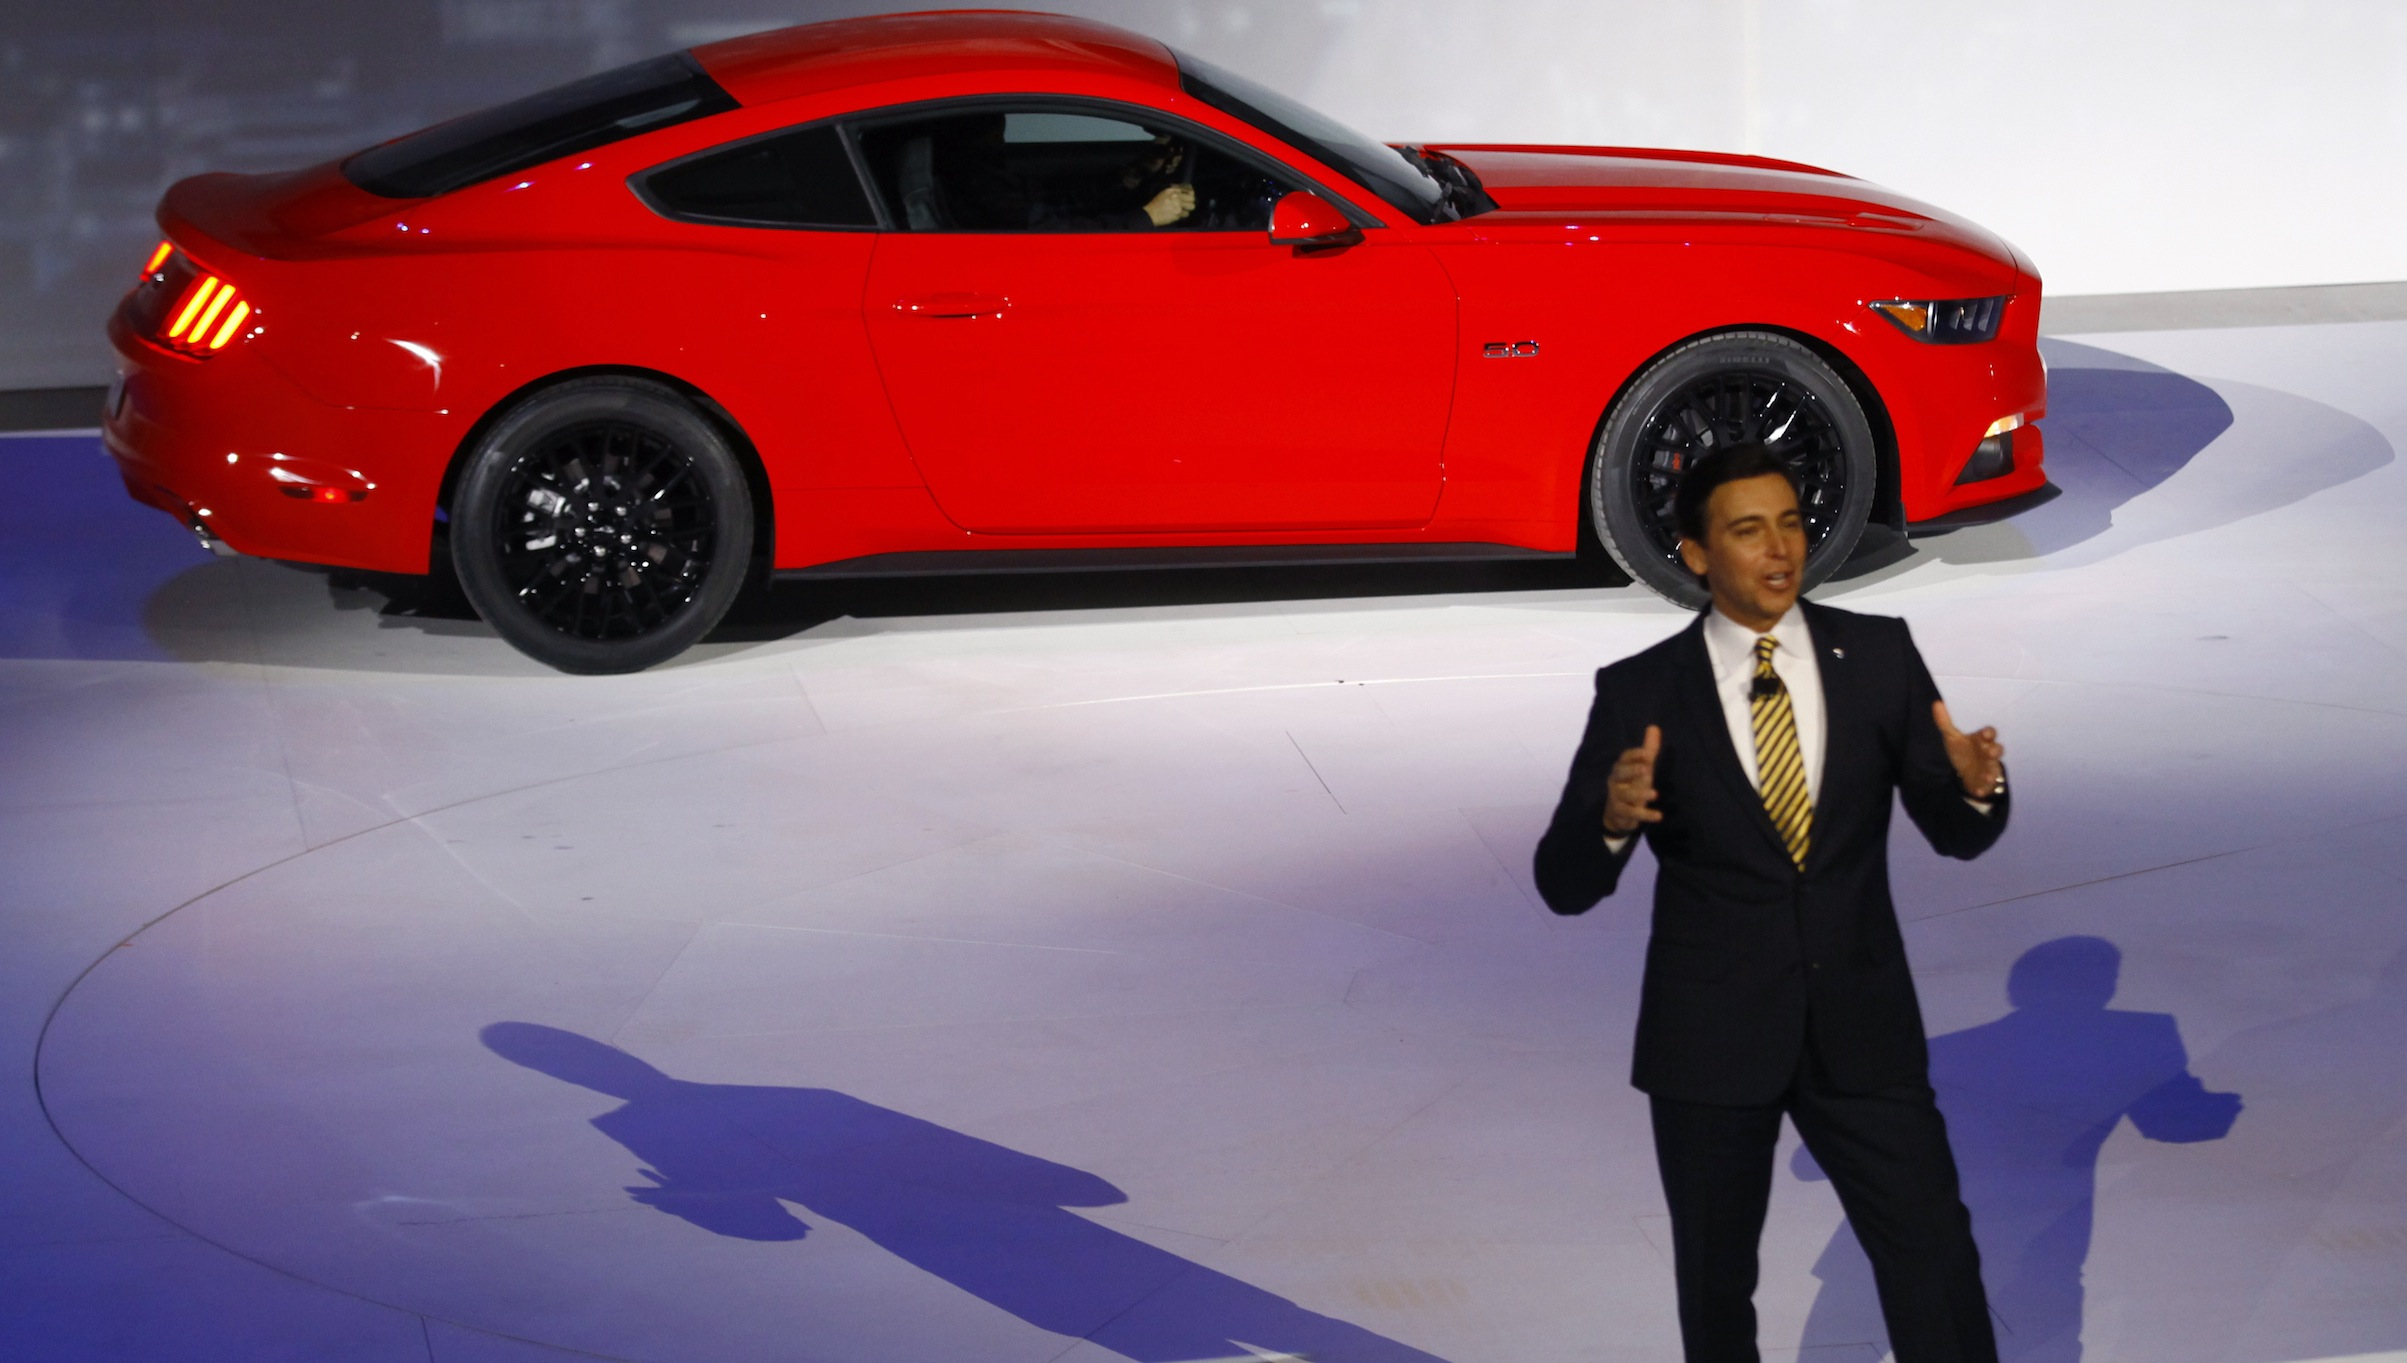 Mark Fields, Ford Chief Operating Officer, speaks near a Ford Mustang during the press preview day of the North American International Auto Show in Detroit, Michigan January 13, 2014.   REUTERS/Joshua Lott (UNITED STATES  - Tags: TRANSPORT BUSINESS)   - RTX17CGY